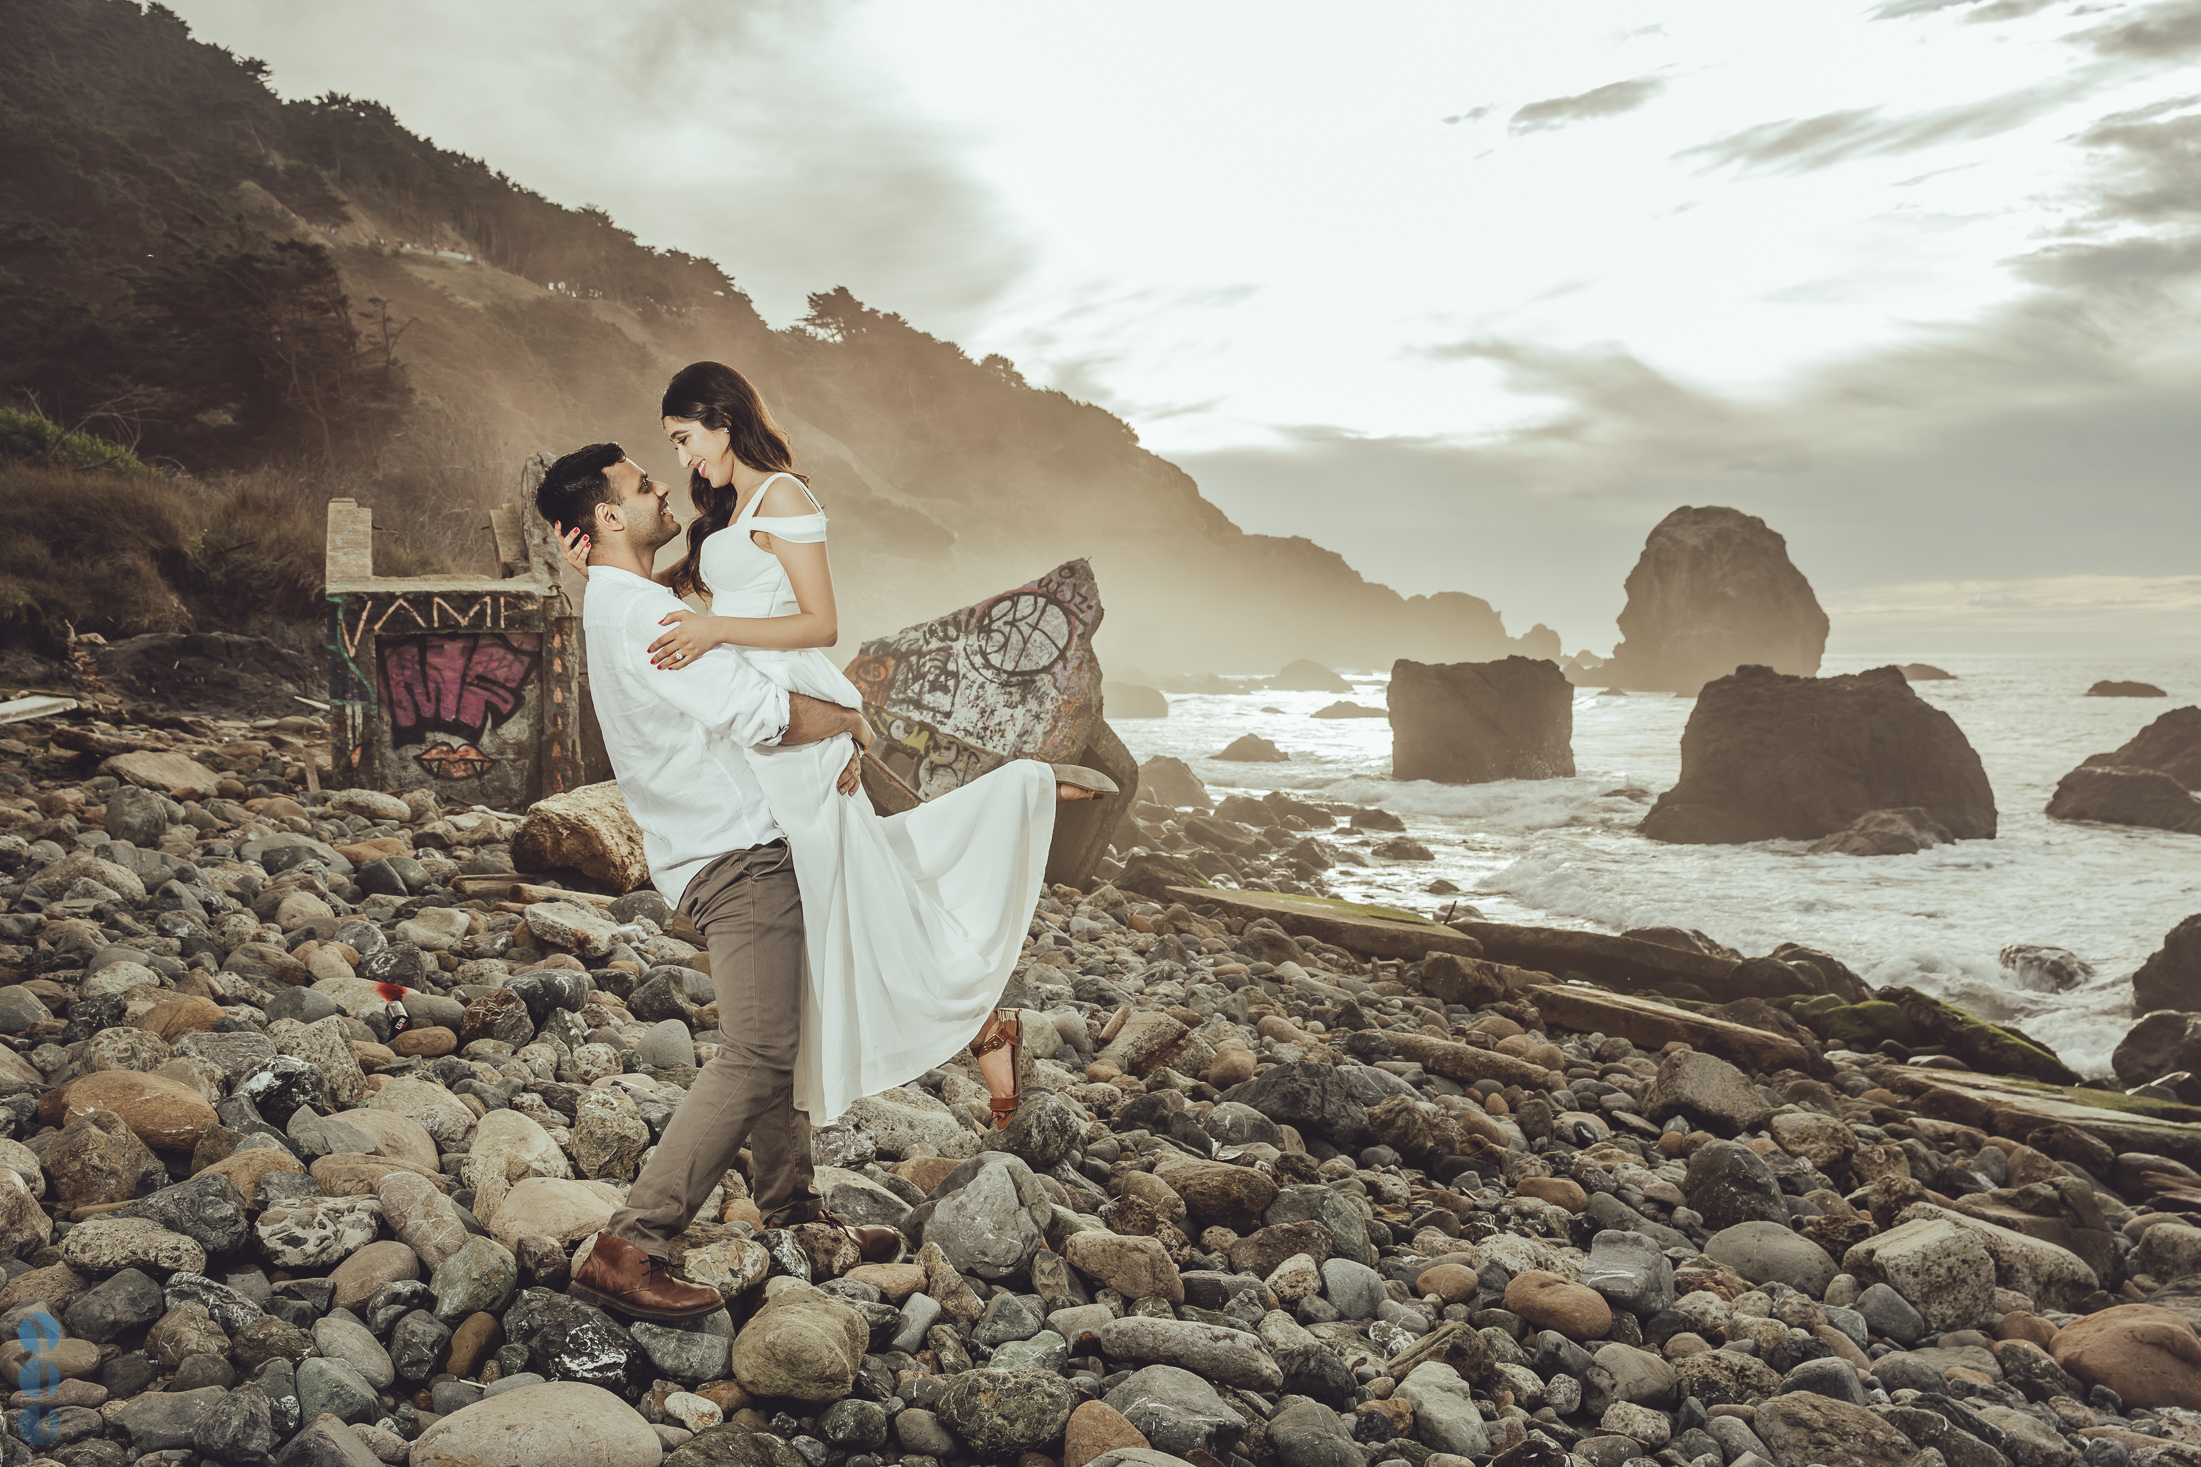 Romantic San Francisco engagement photography on the beach with Sahil & Natasha.